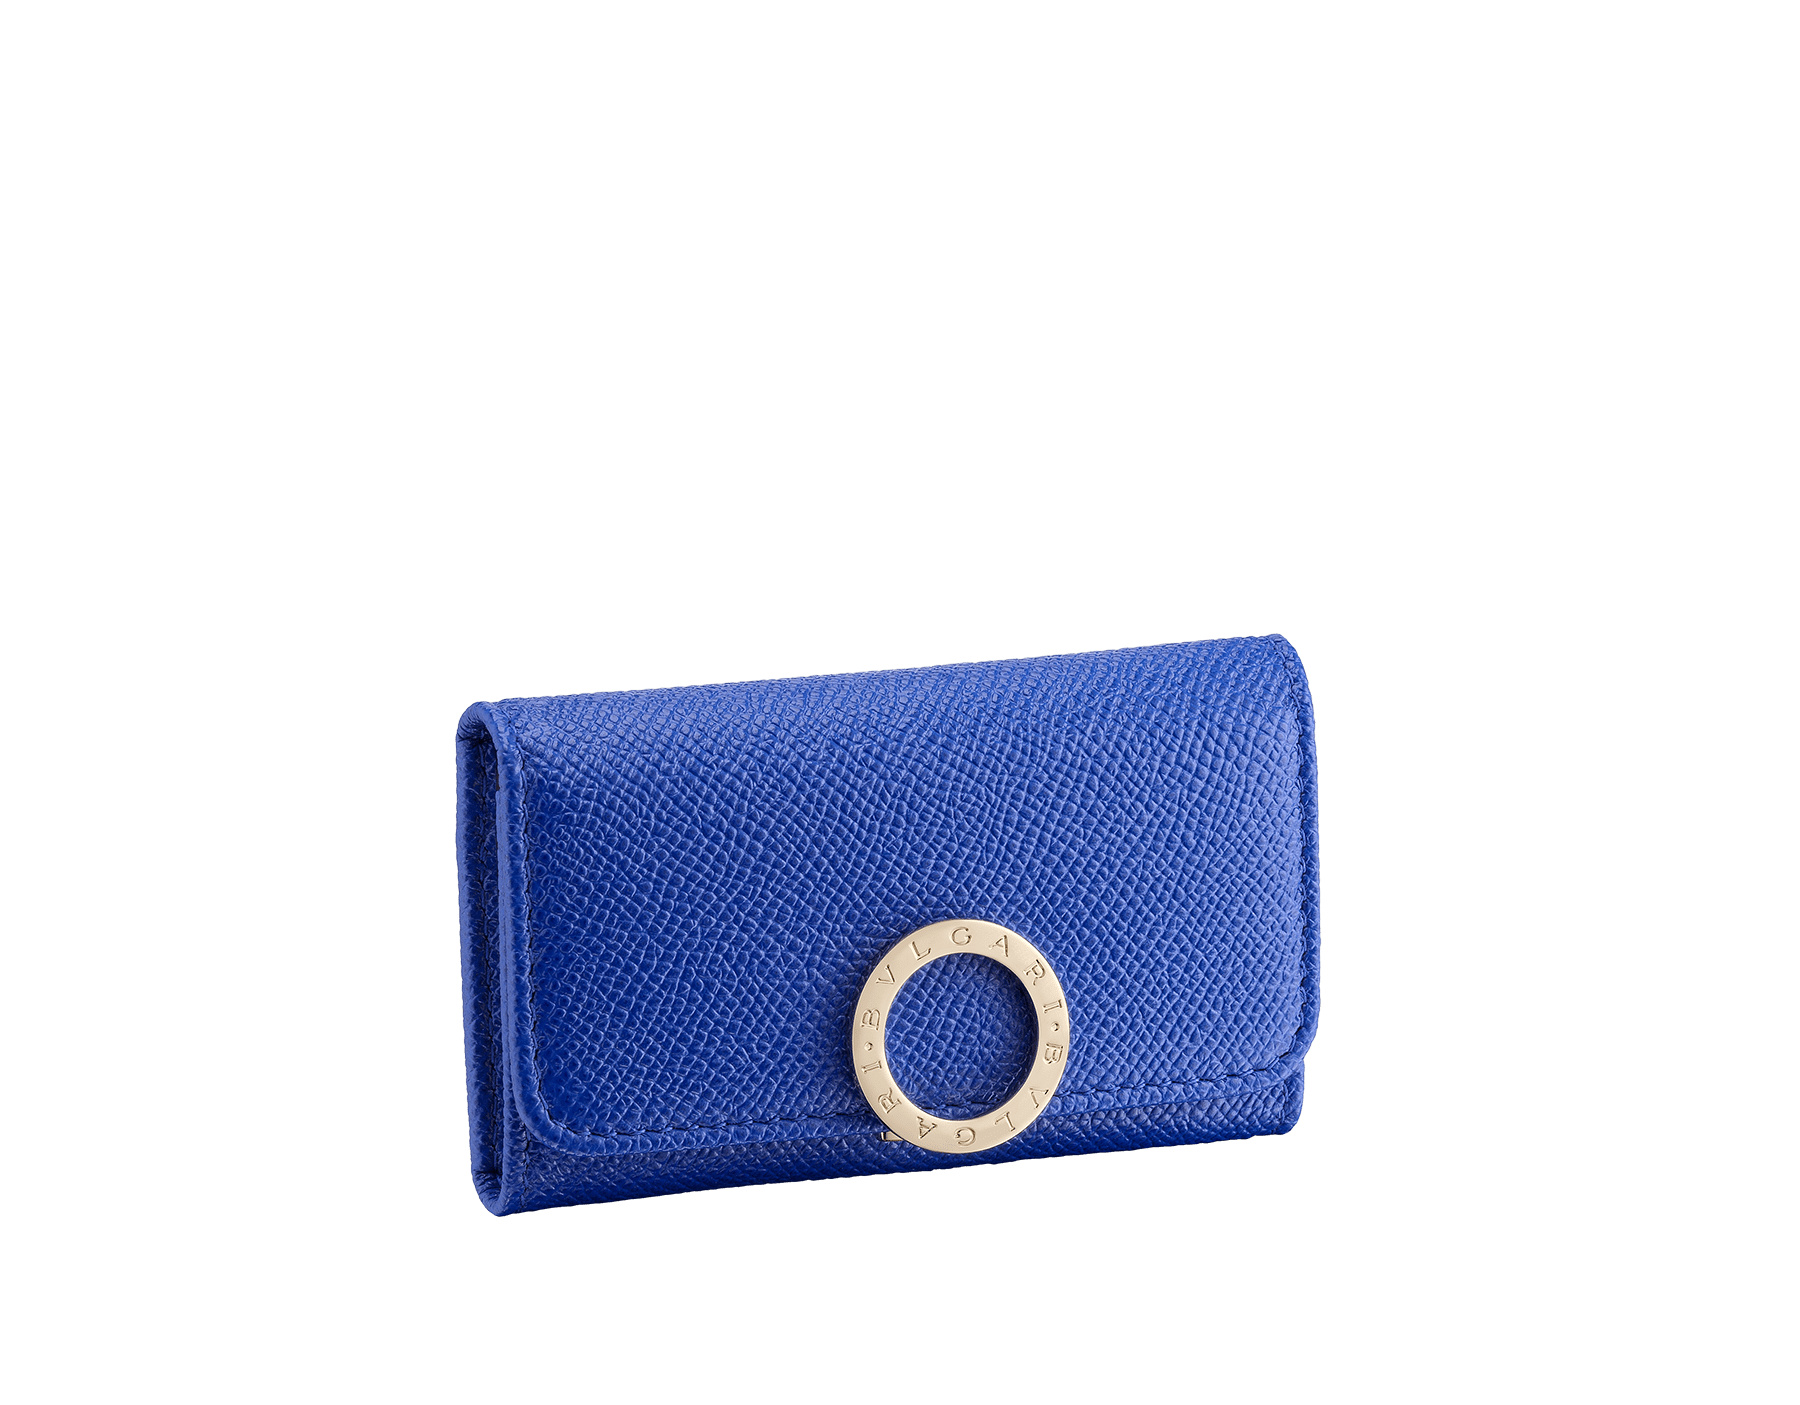 BVLGARI BVLGARI small keyhoder in cobalt tourmaline grain calf leather and aster amethyst nappa leather. Iconic logo clip closure in light gold plated brass 287260 image 1